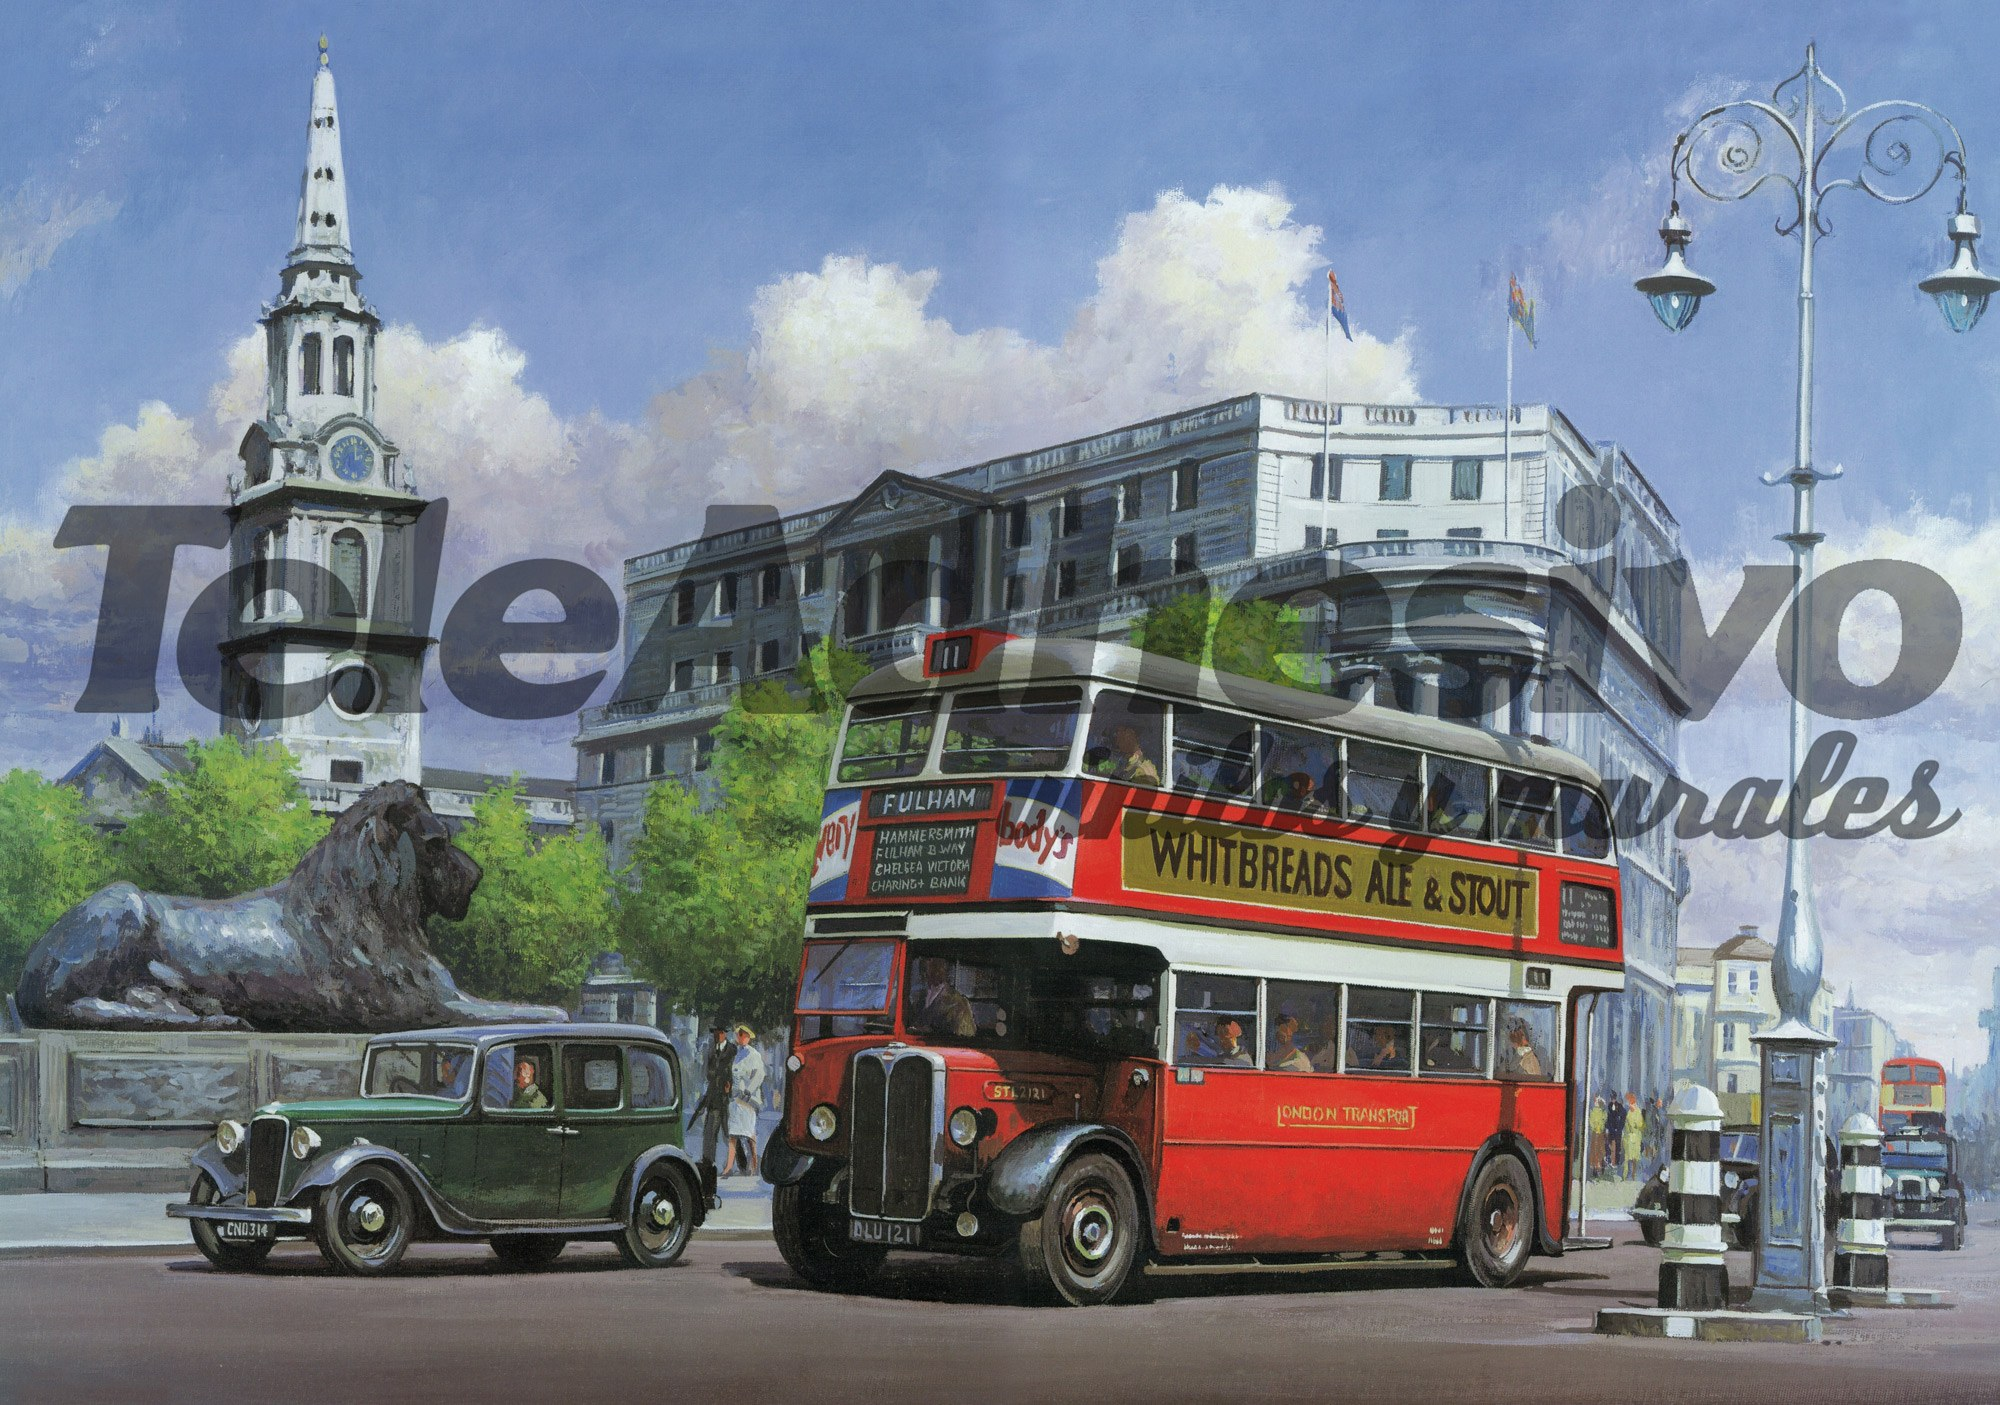 Fototapeten: London Bus